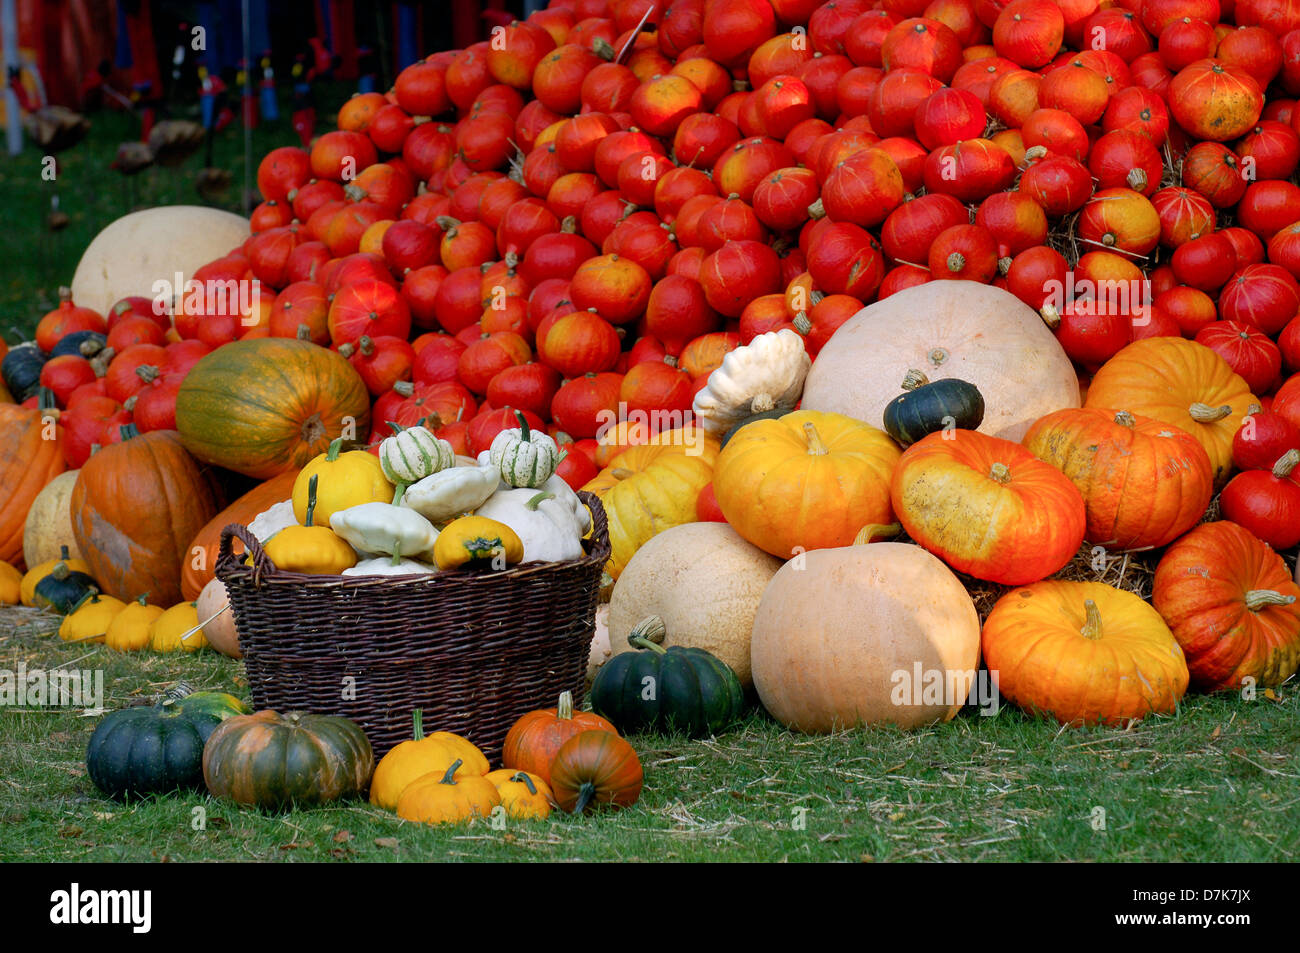 Autumn still life, fruit, vegetables, pumpkins, straw bales - Stock Image